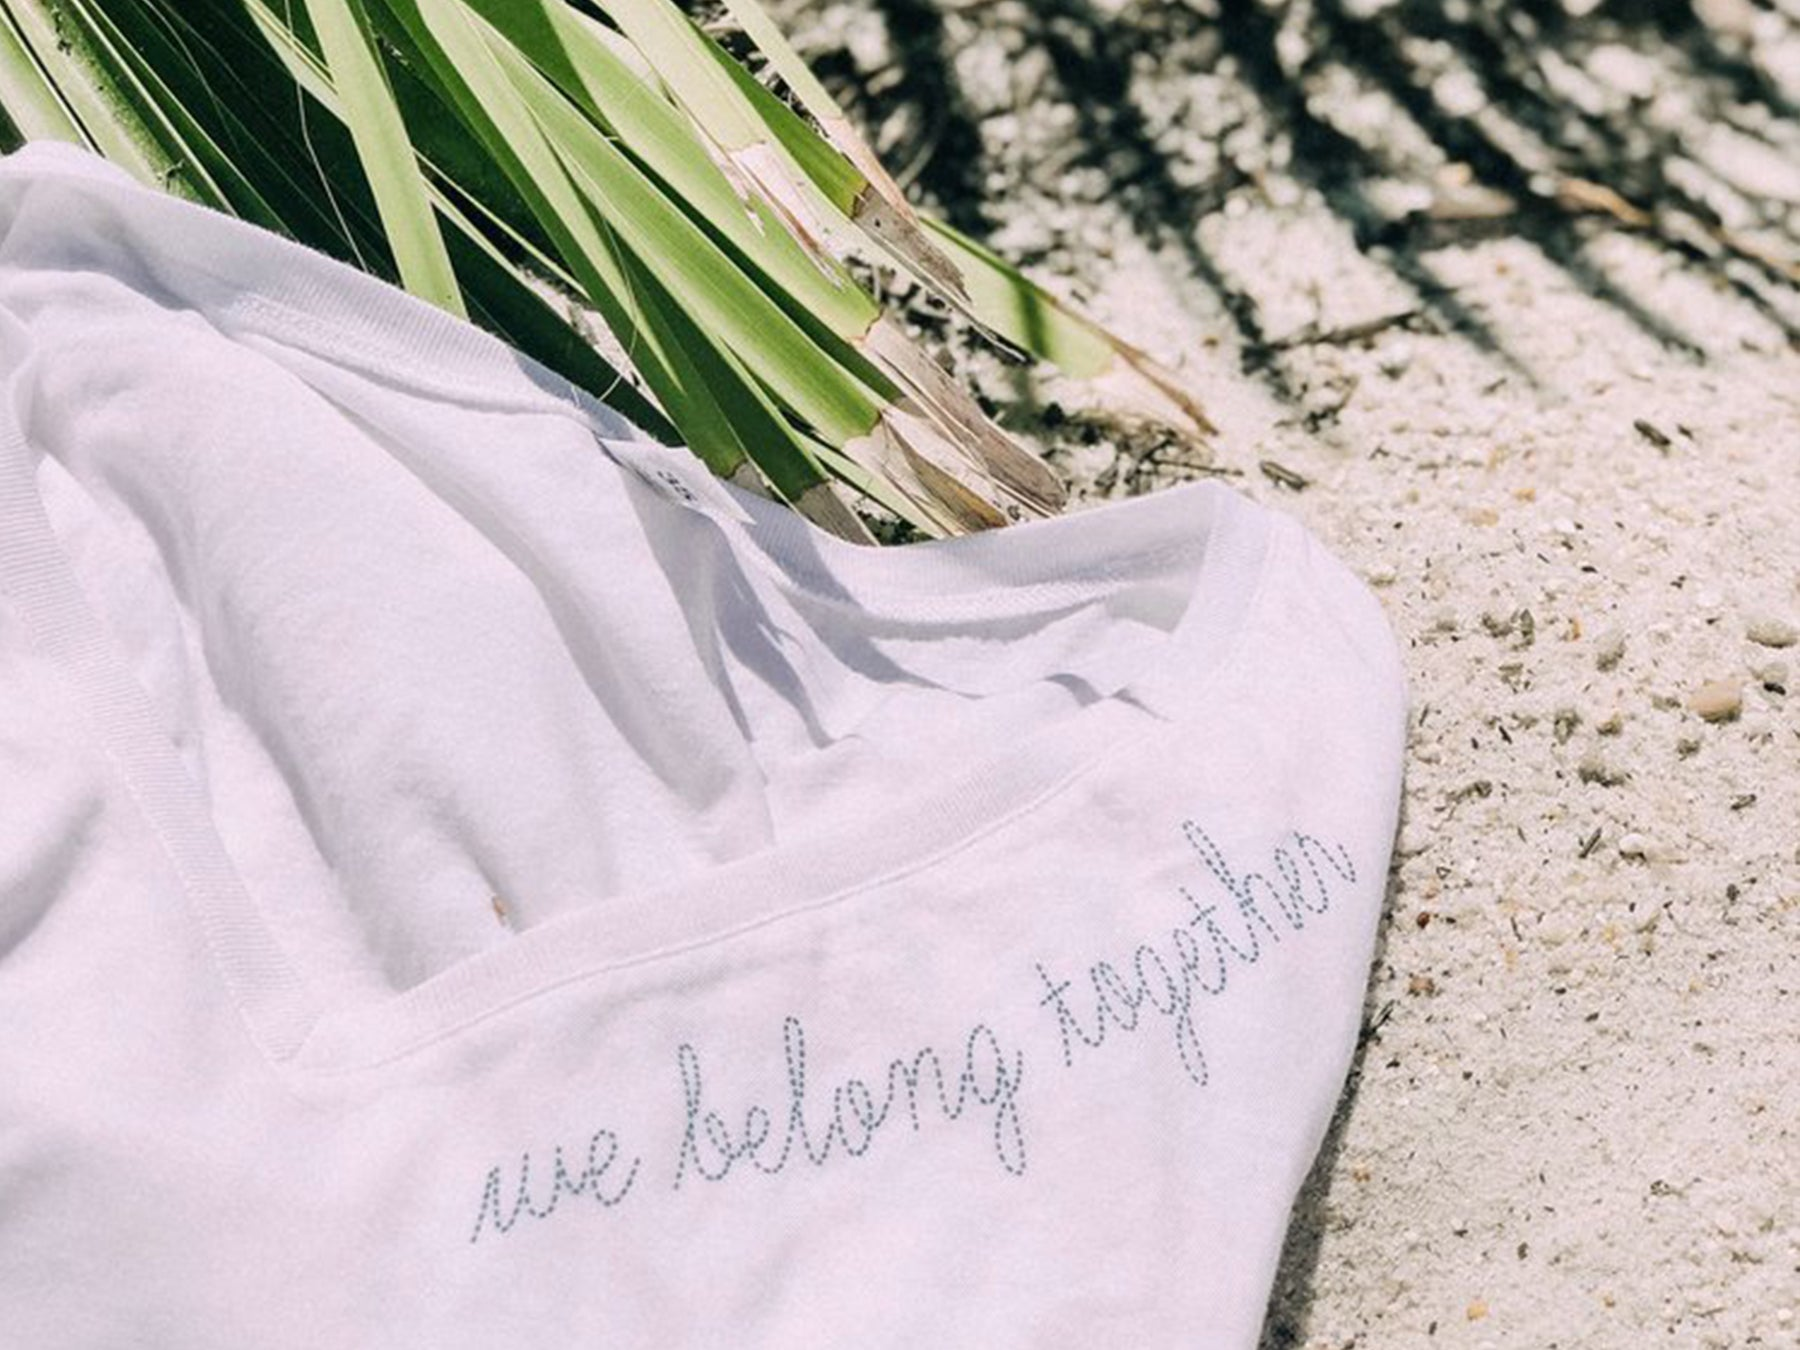 We Belong Together Nursing Tees